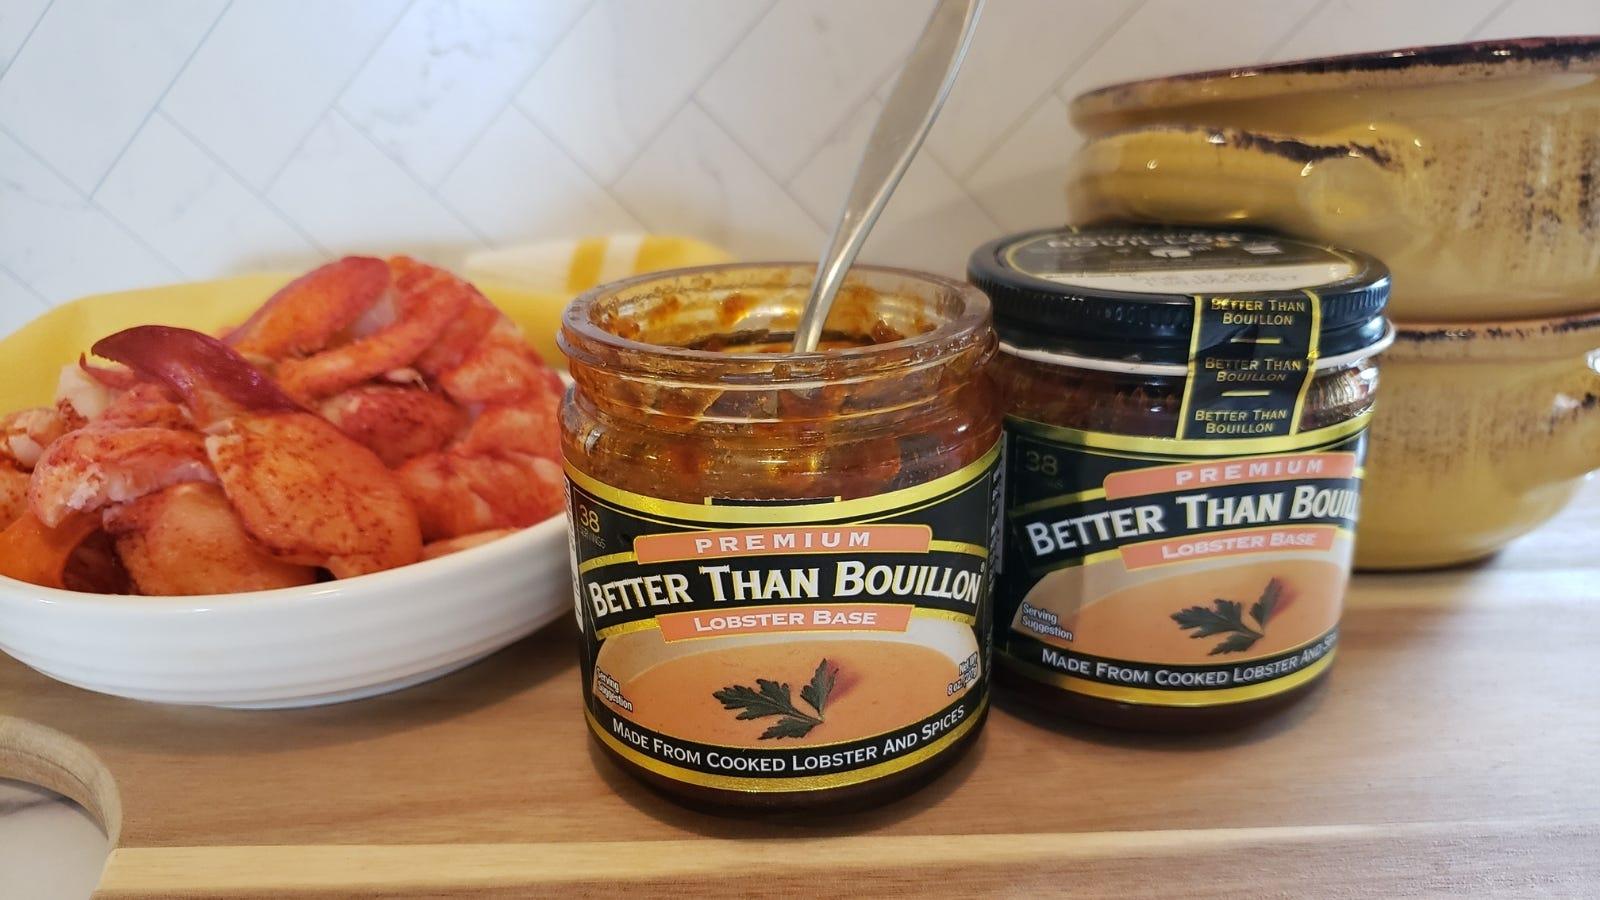 Two jars of Better than Bouillon lobster base presented with two crocks and a shallow dish of lobster meat in the background.